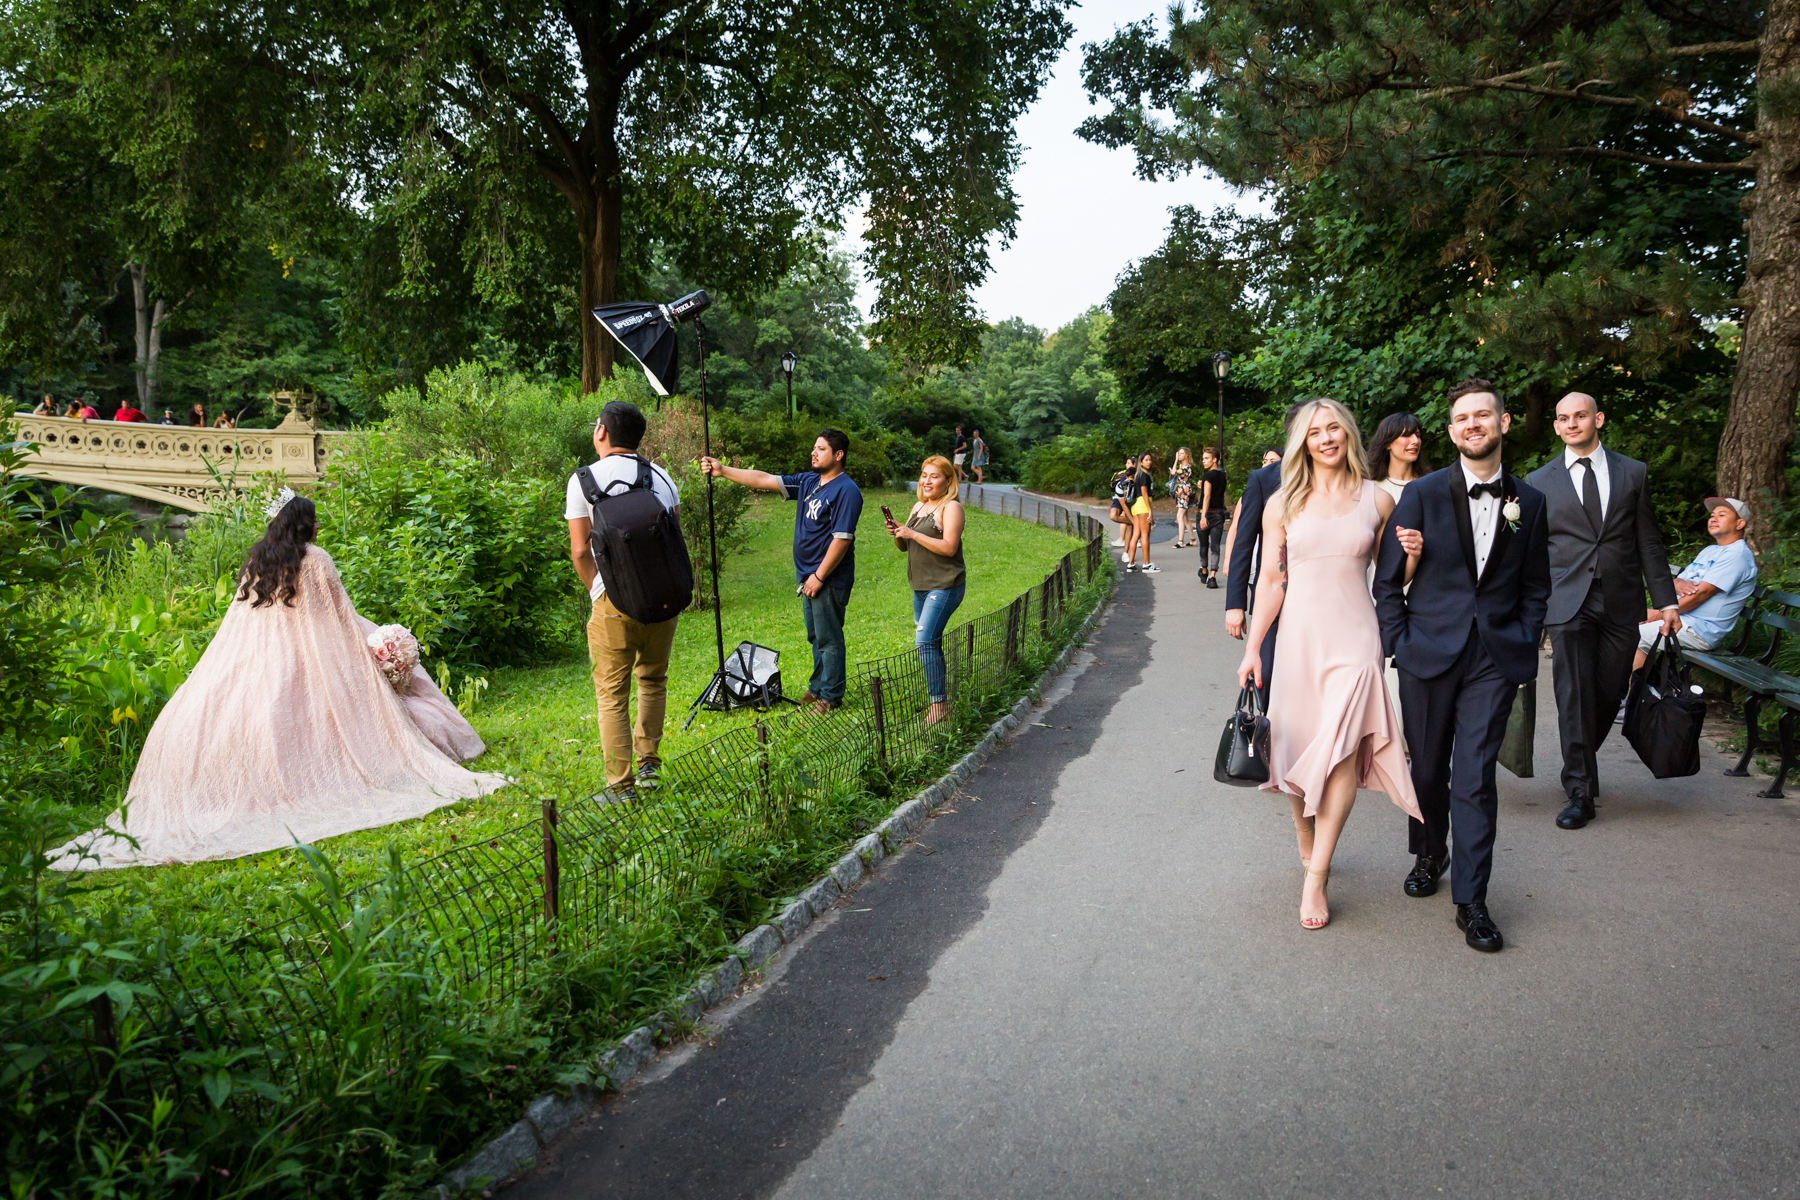 Wedding party walking past photo shoot for an article entitled, 'Do you need a permit to get married in Central Park?'